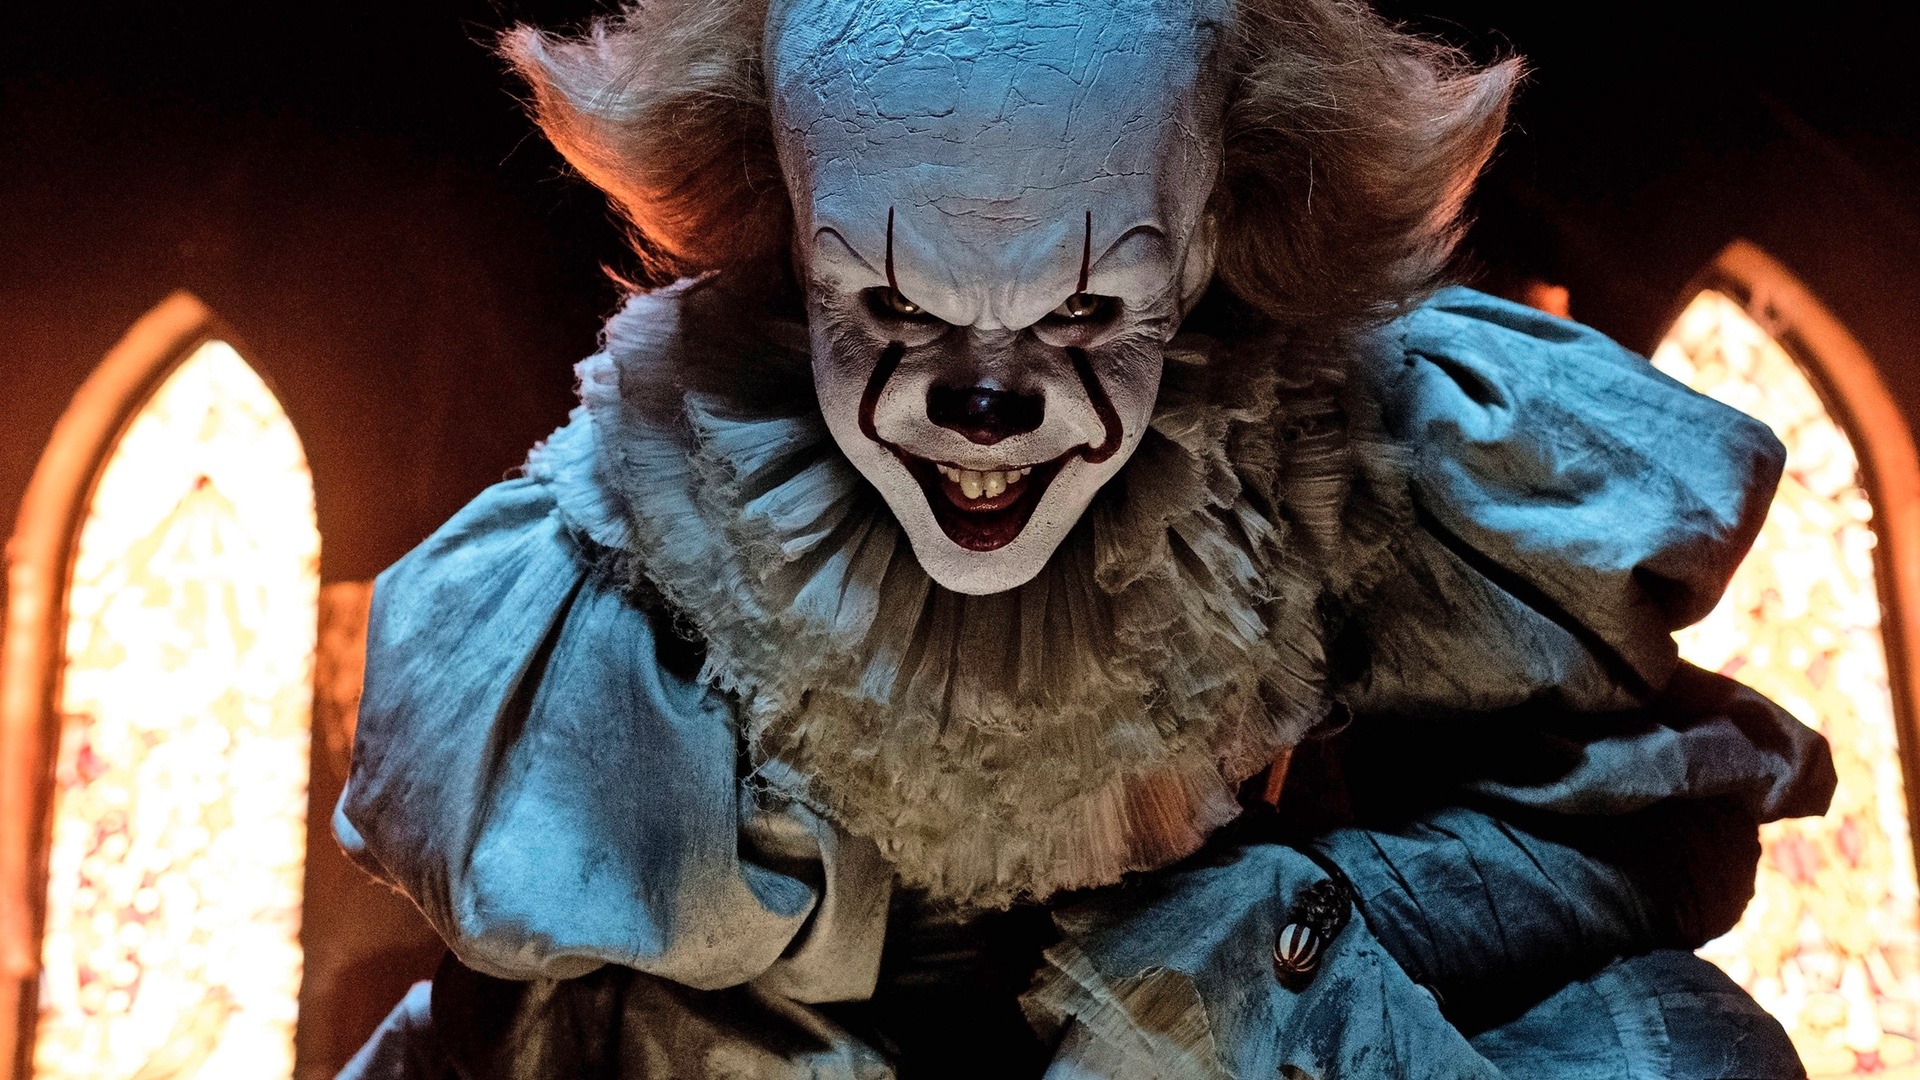 Geek Wallpaper Hd Another Sinister Image Of Pennywise The Clown In It Gives